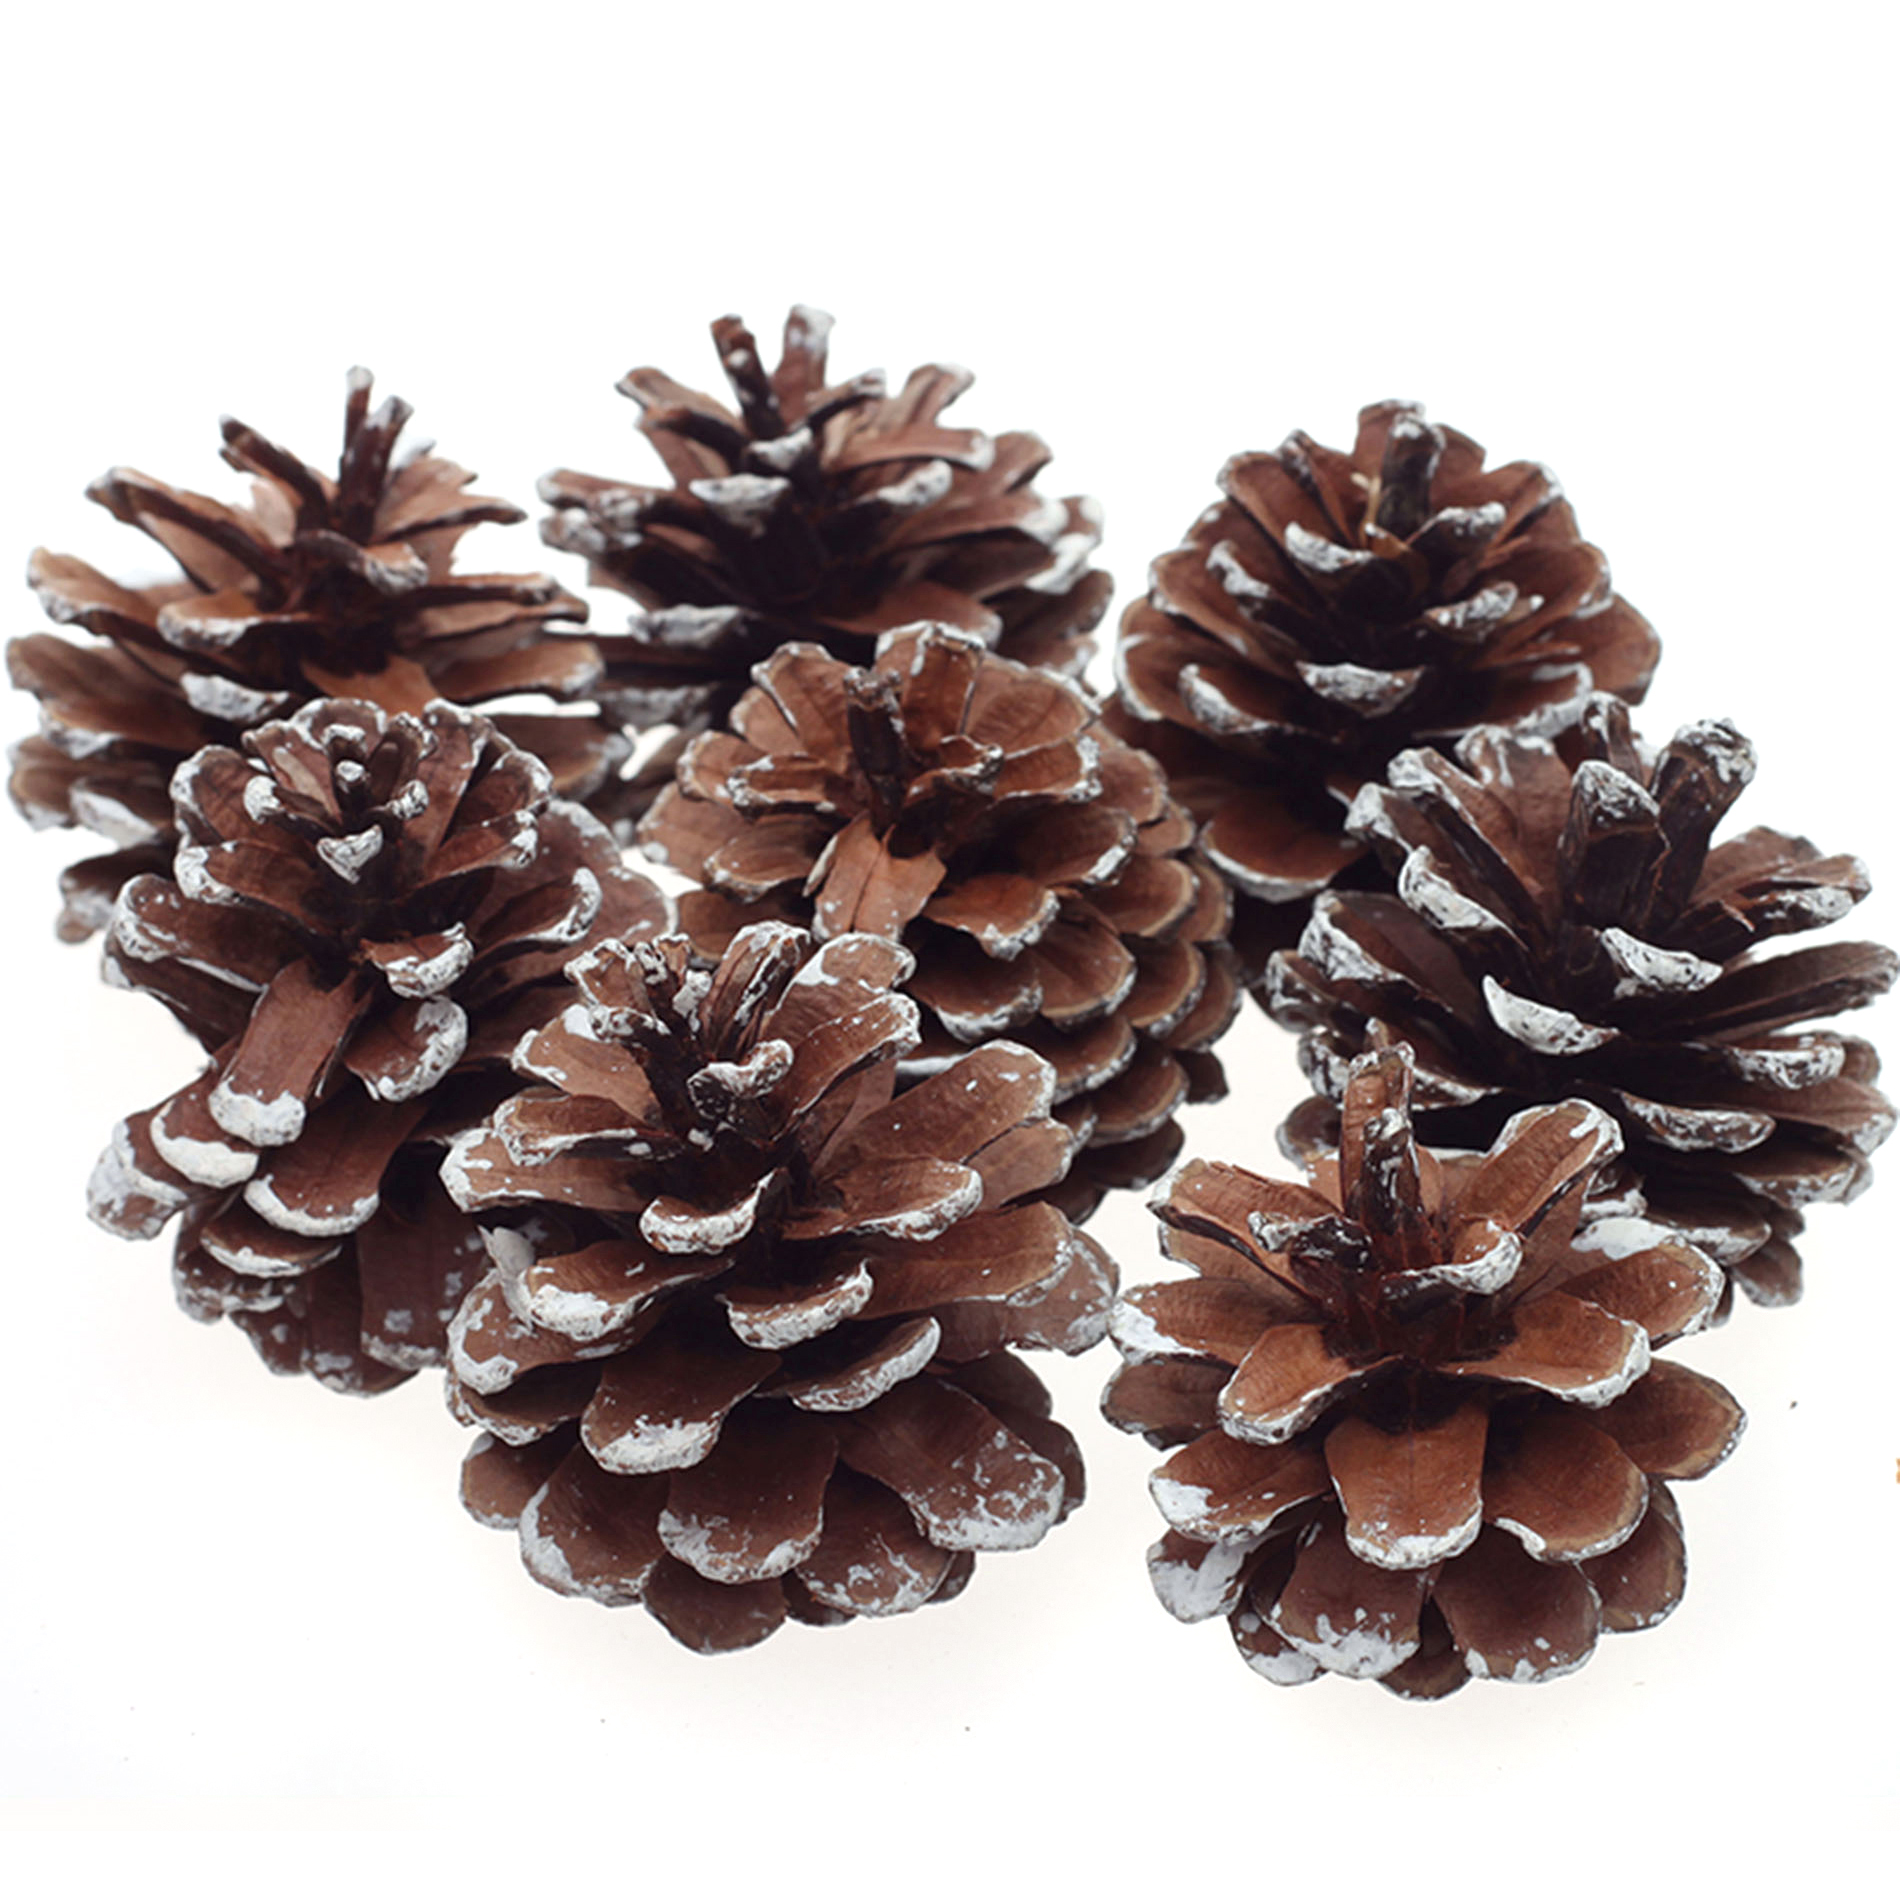 8Pcs Snow Pinecone Ornaments Christmas Tree Baubles Pine Cones Decorations